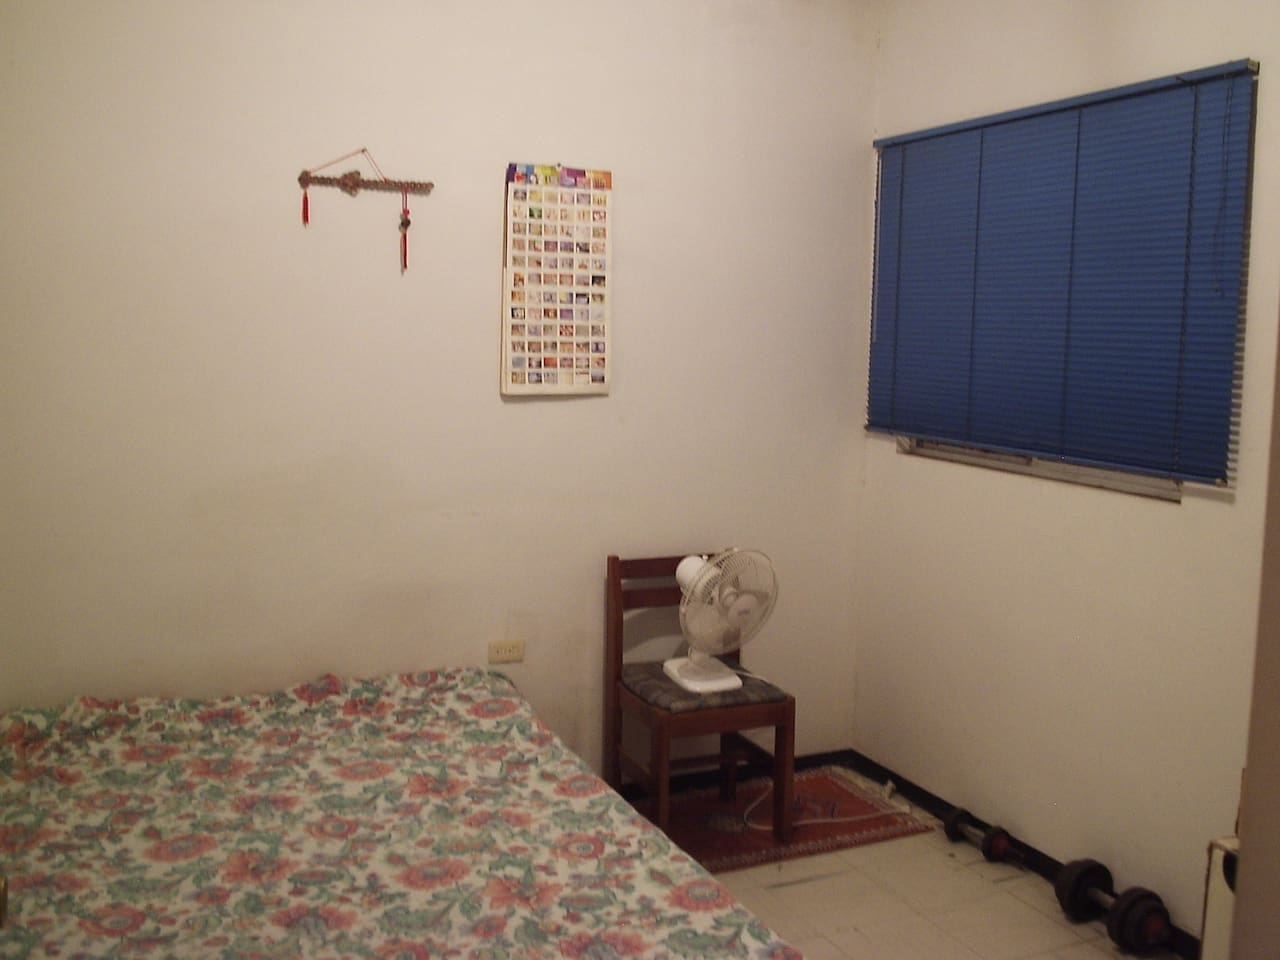 THIS IS THE ROOM! :D .........A NICE PLACE TO STAY AT CHIHUAHUA CITY! :D